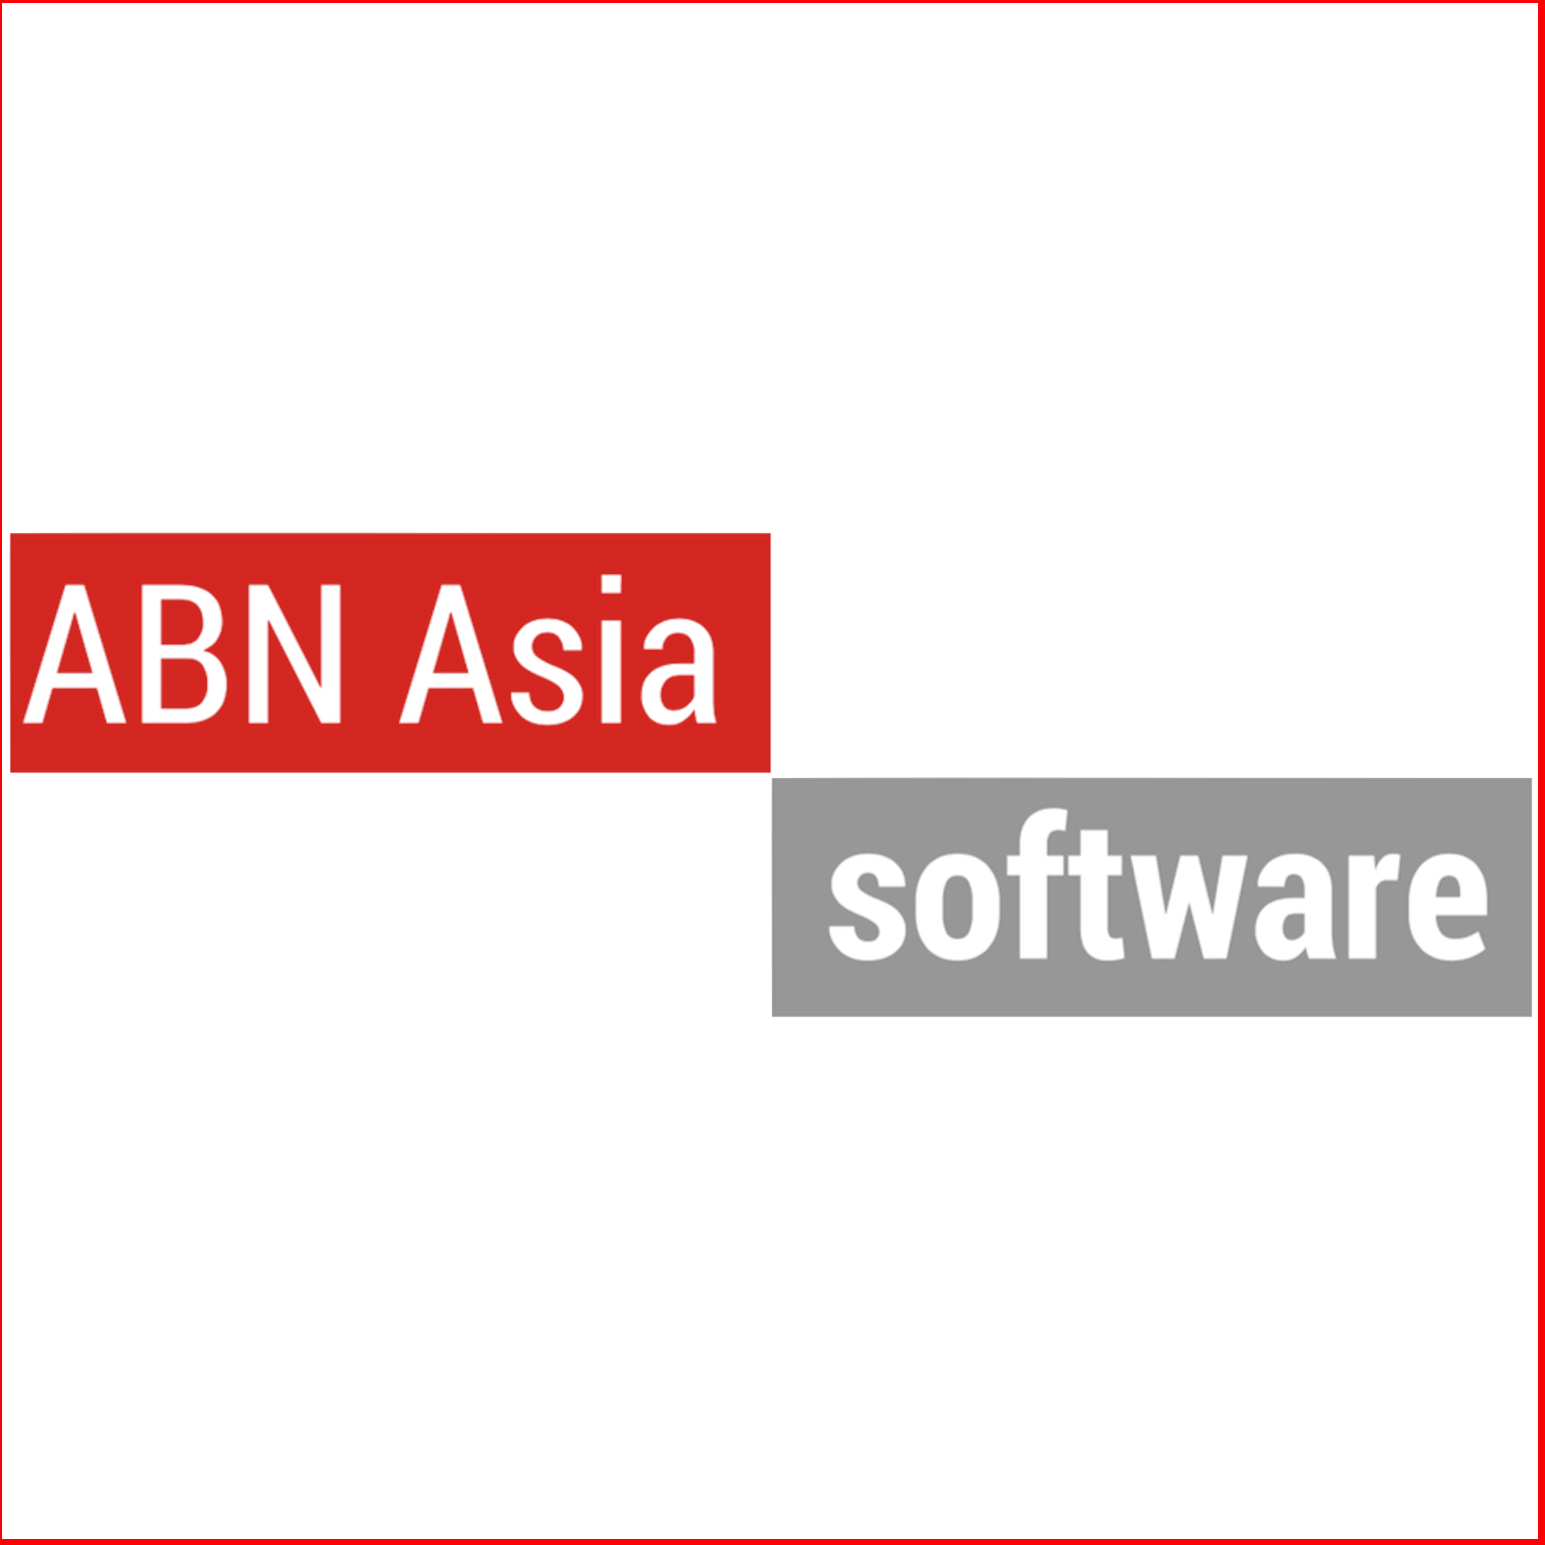 ABN Software | A - AI & Analytics | B - Big Data & Banks | N - Network Security & New Technologies